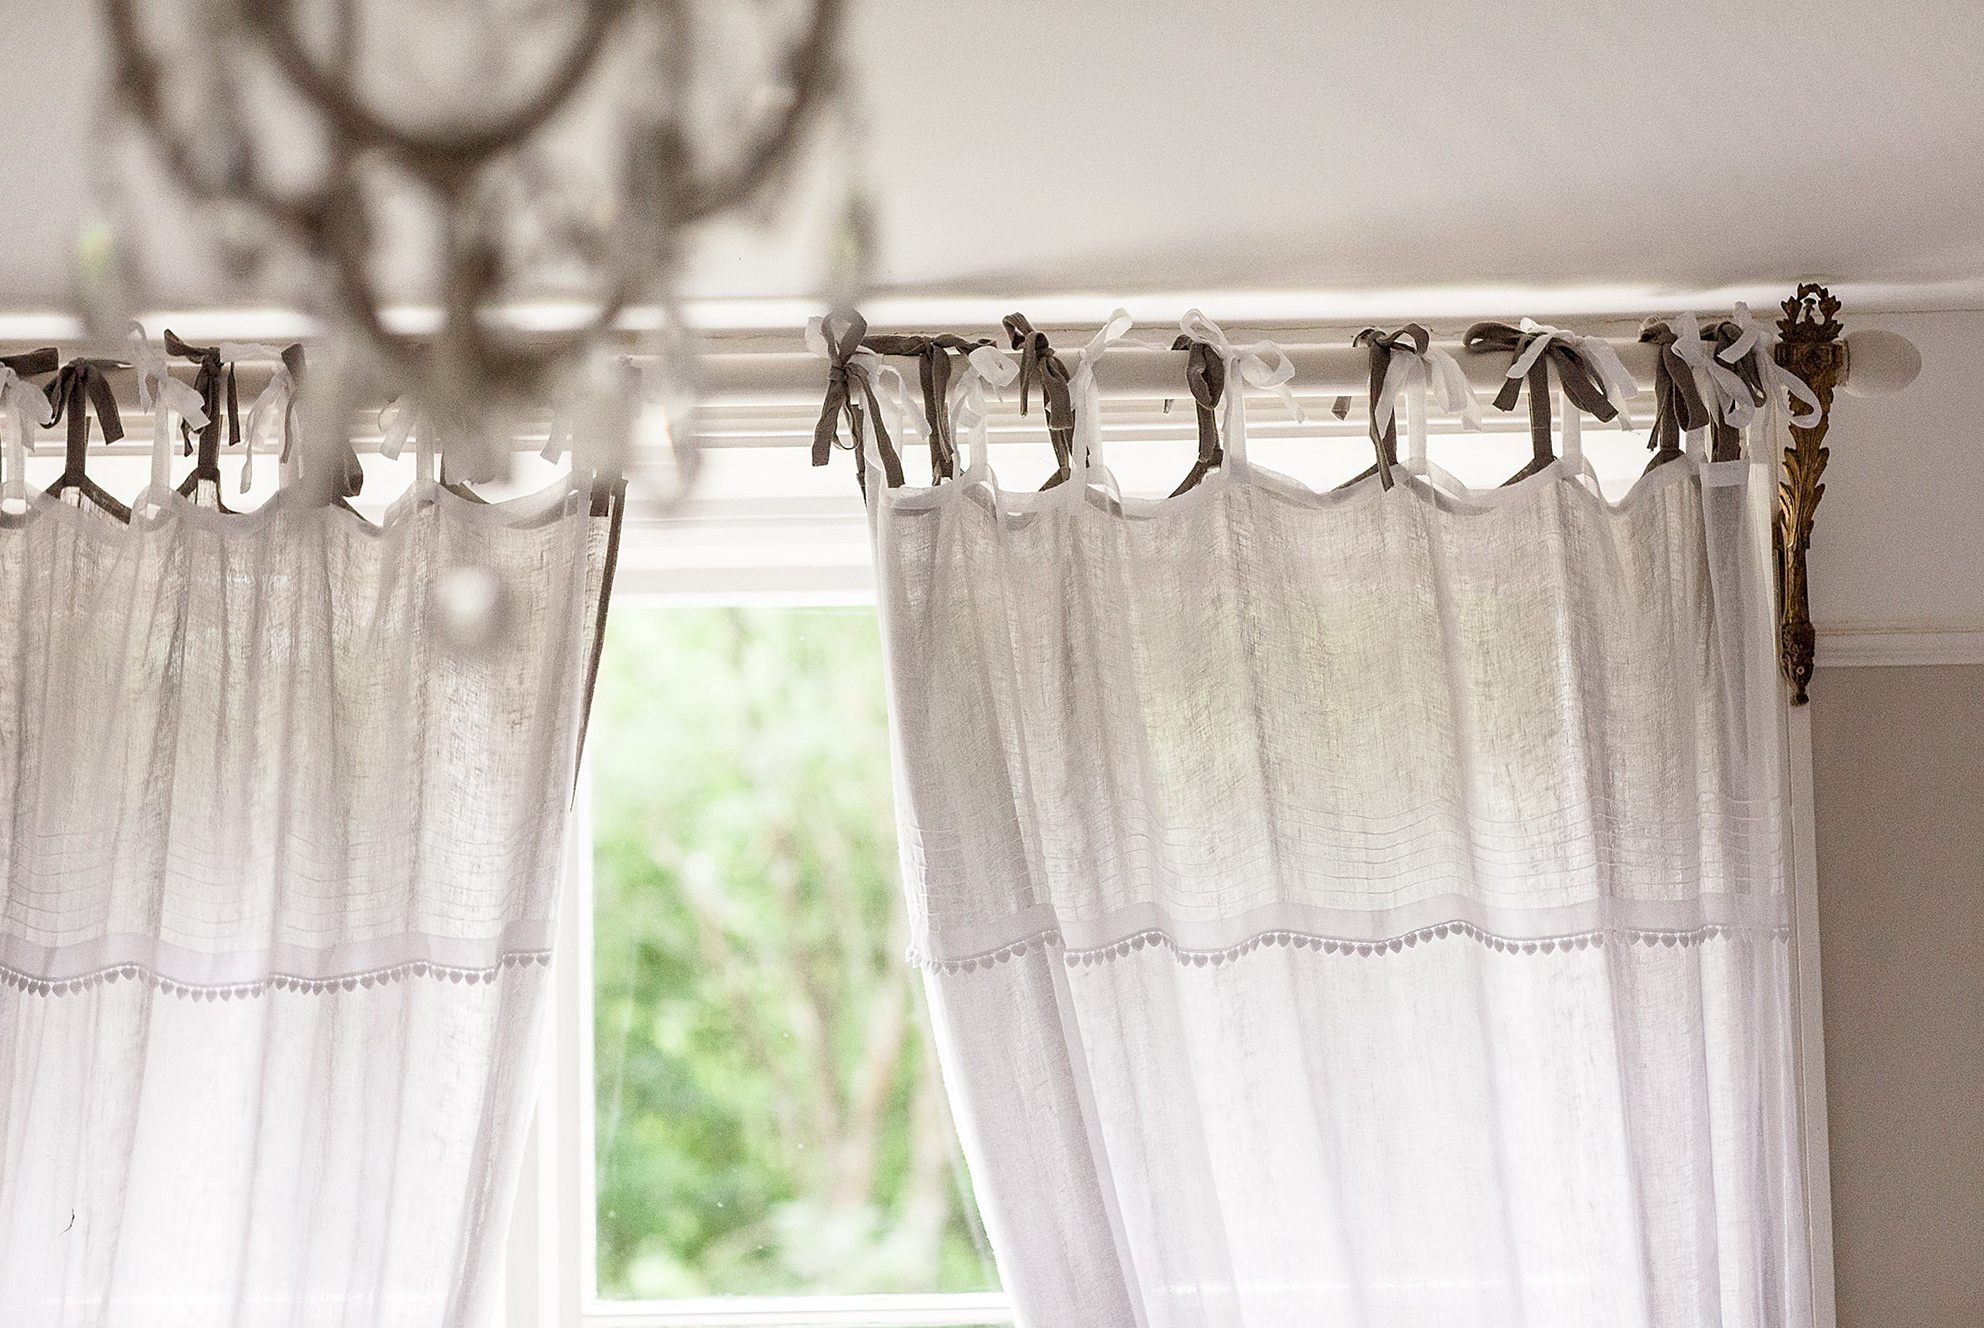 97+ How To Make Curtains With Tie Tops How To Make Curtains With Tie Tops How To Sew Tie Top